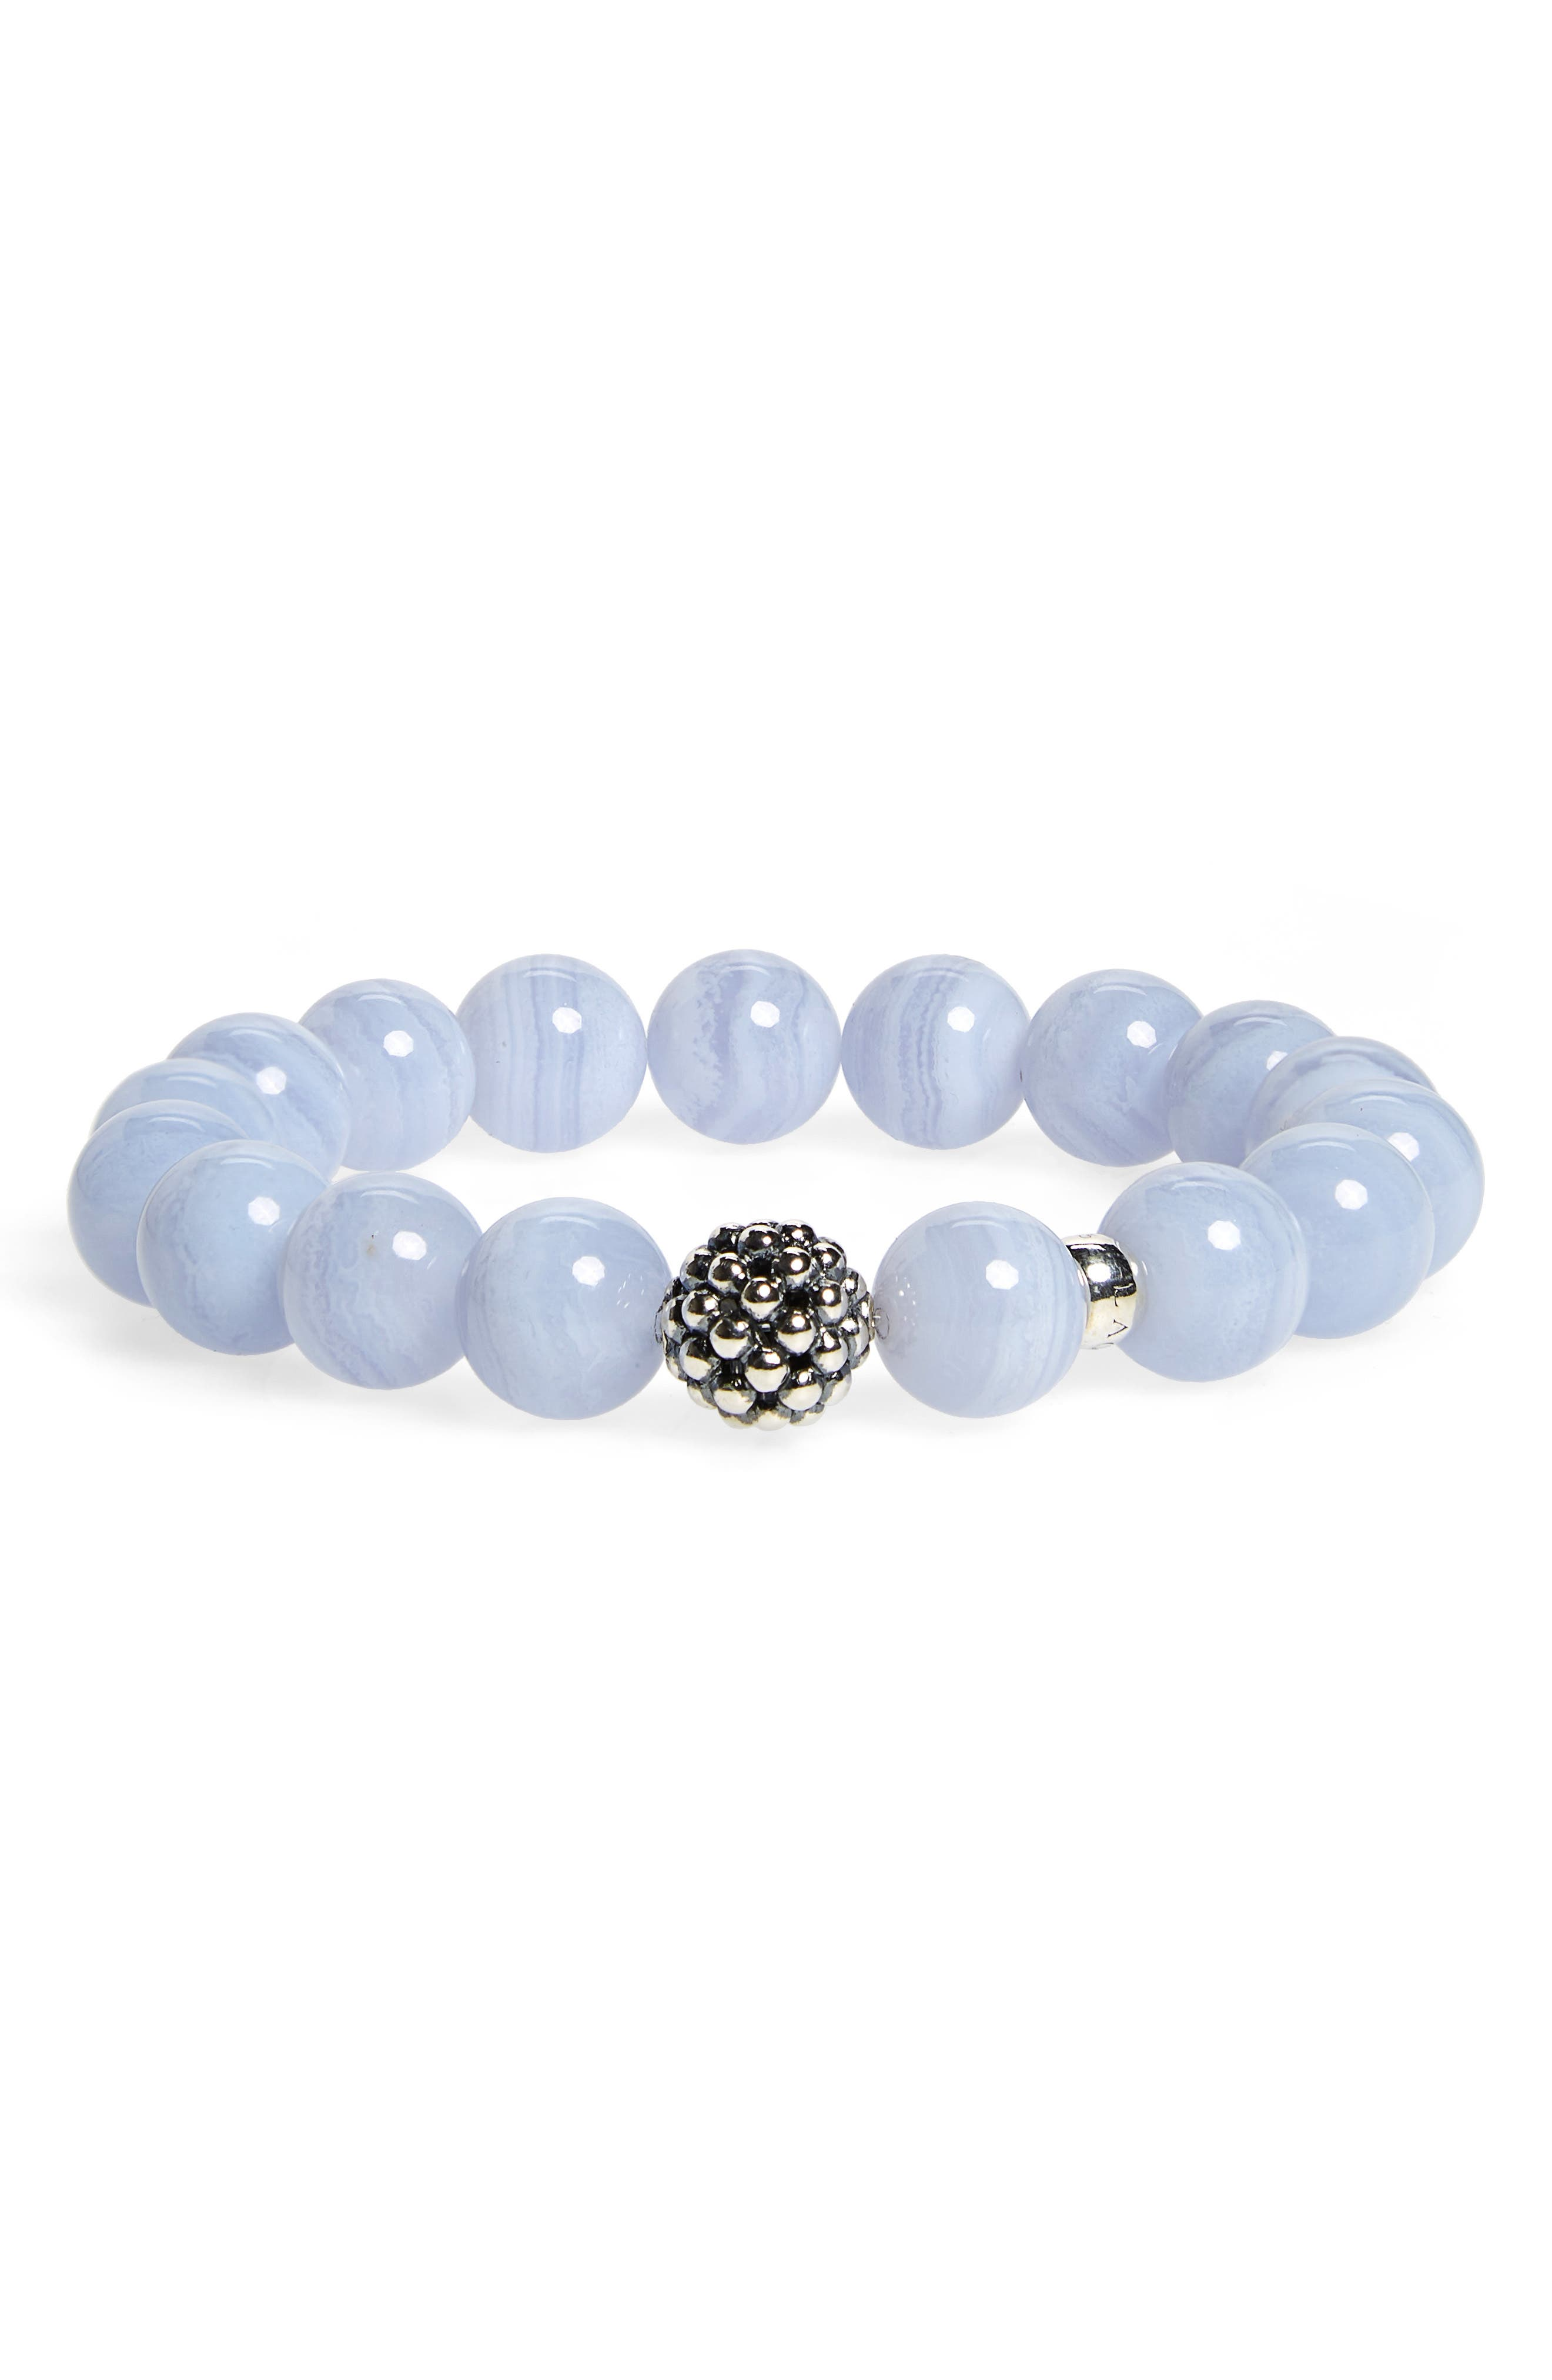 Bead Stretch Bracelet, Main, color, BLUE LACE AGATE